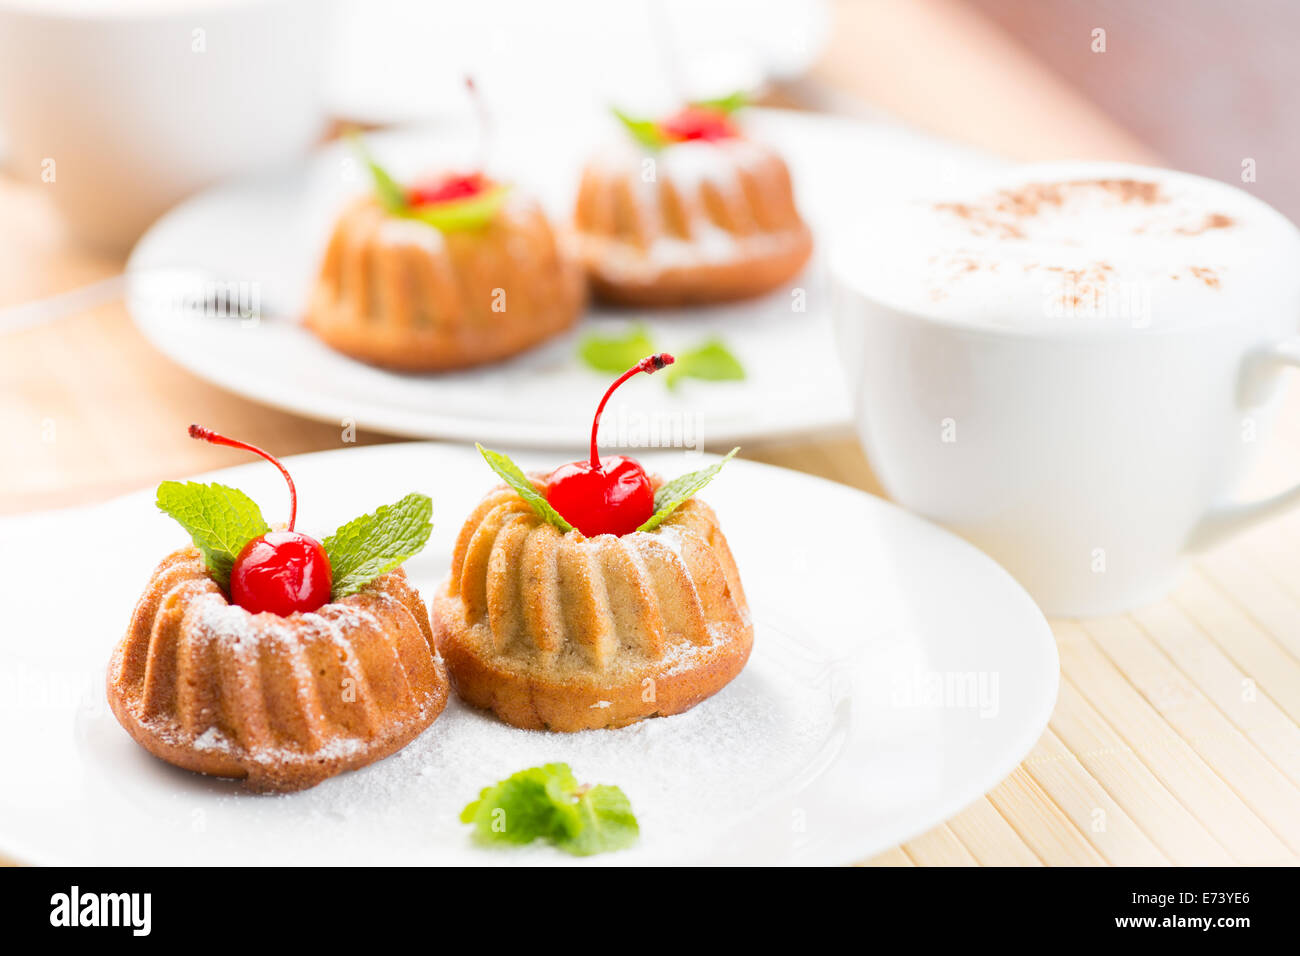 Cakes dessert with cappuccino coffee cup - Stock Image